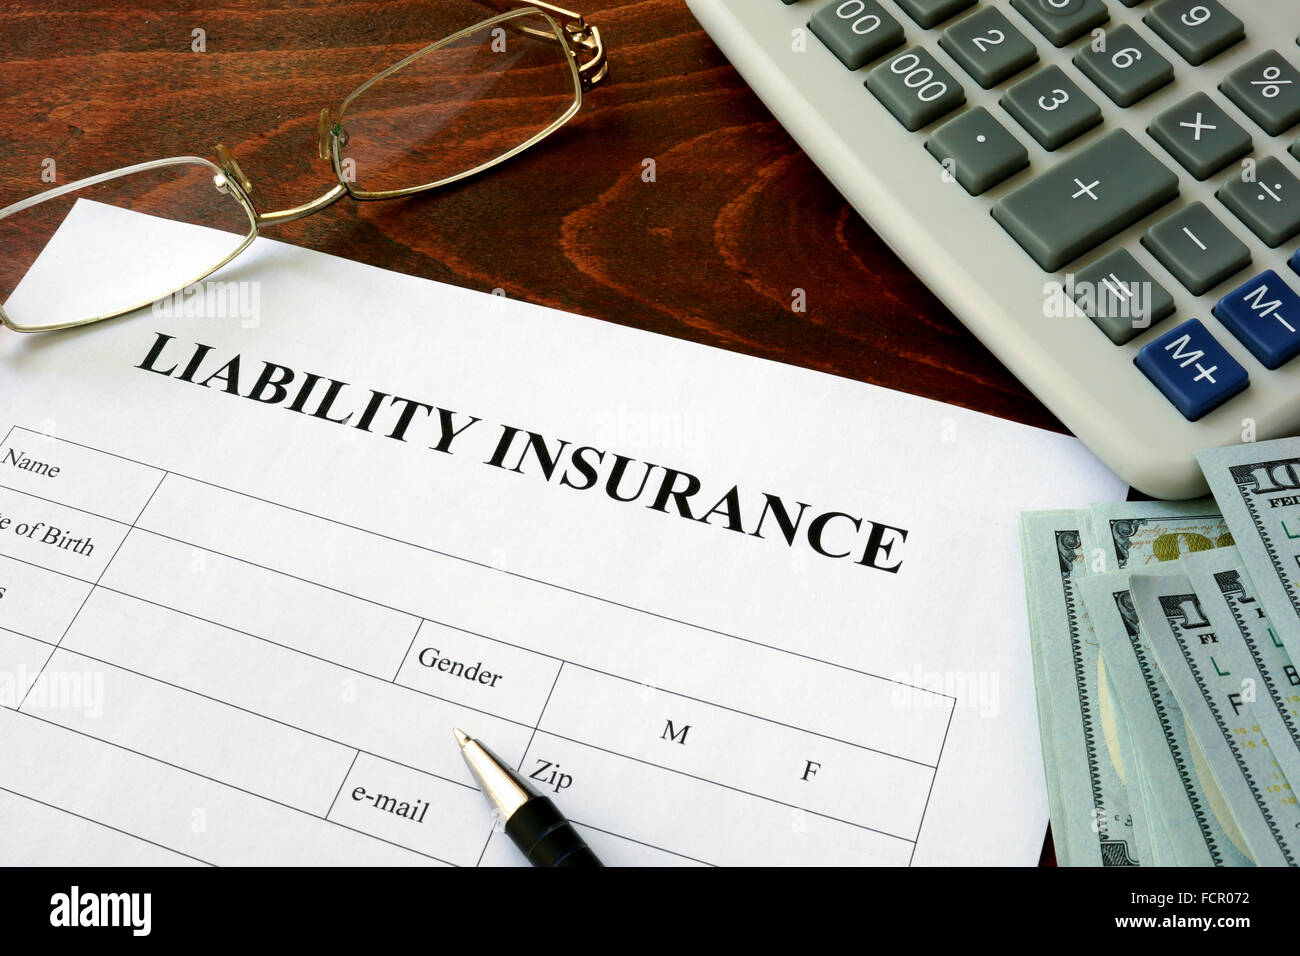 Liability insurance form and dollars on the table. - Stock Image